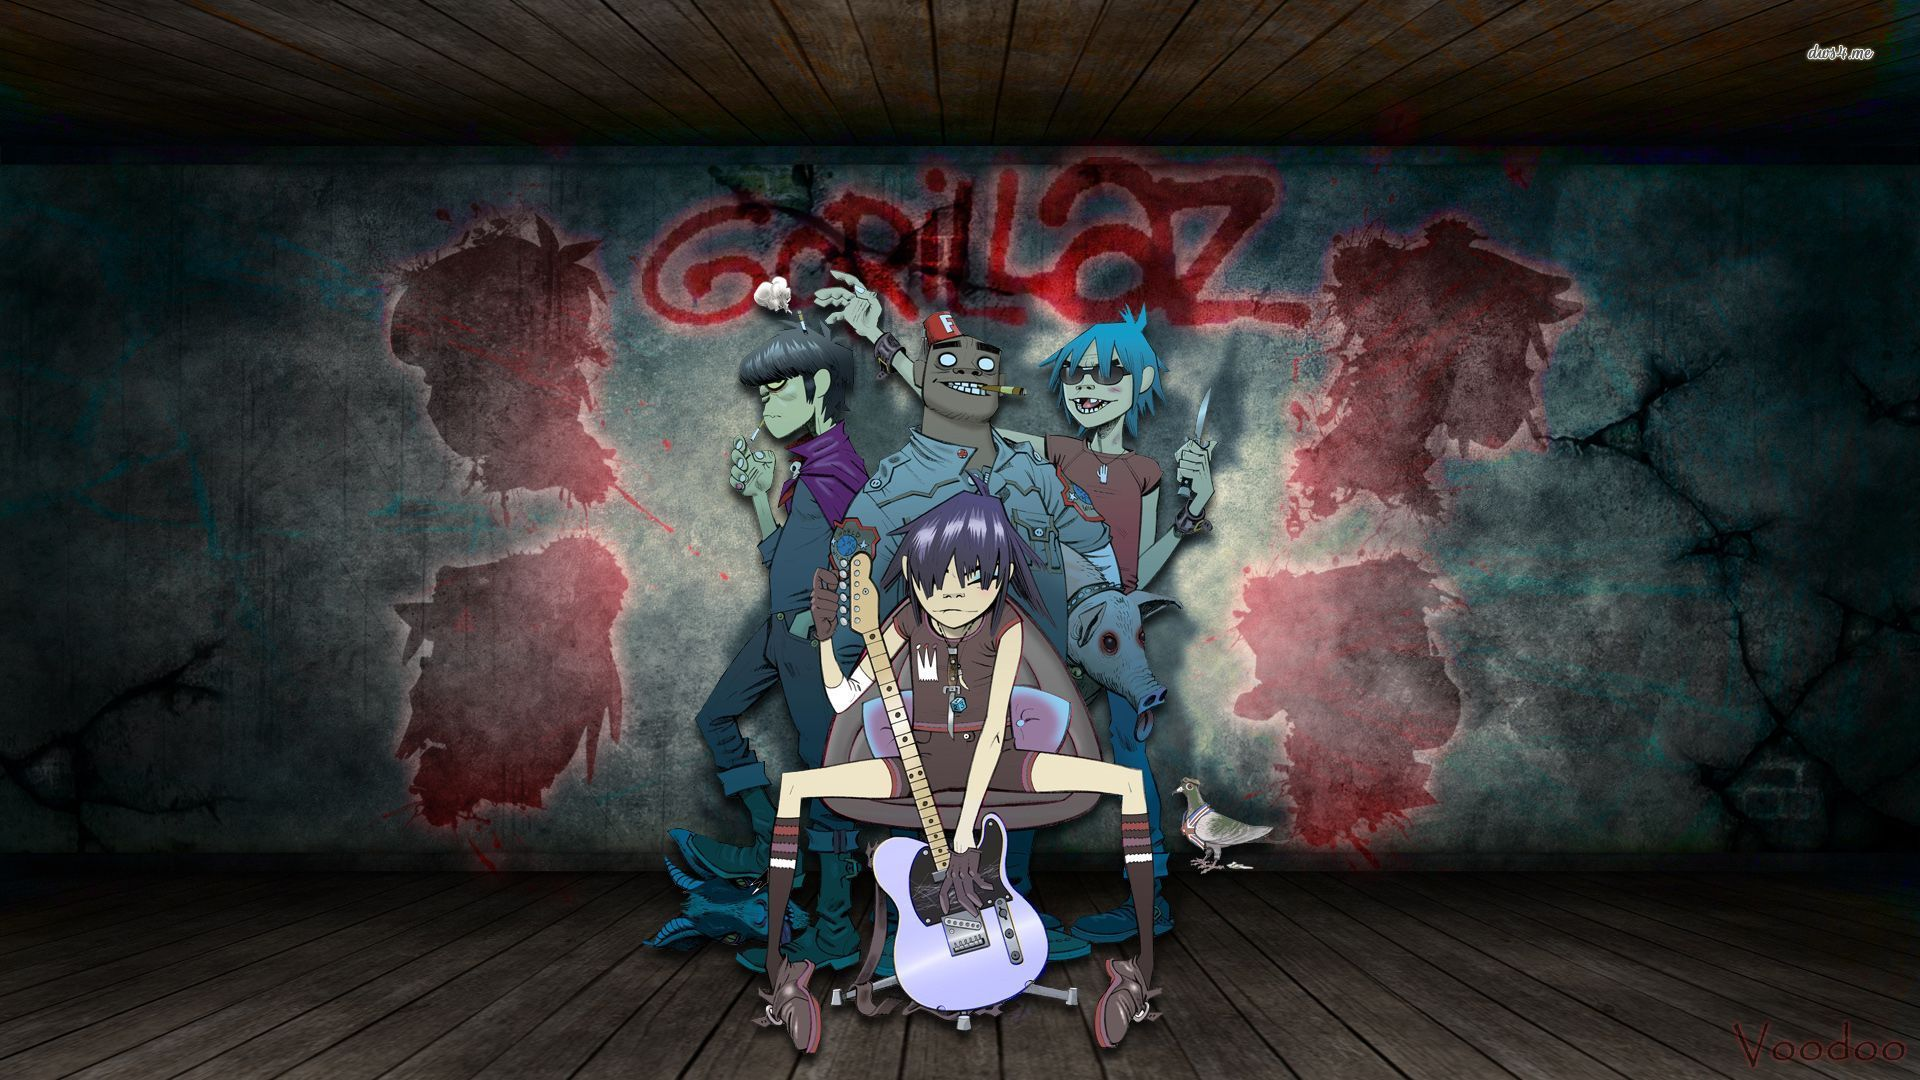 Gorillaz Wallpaper Gorillaz Hd Wallpaper 1080p 96708